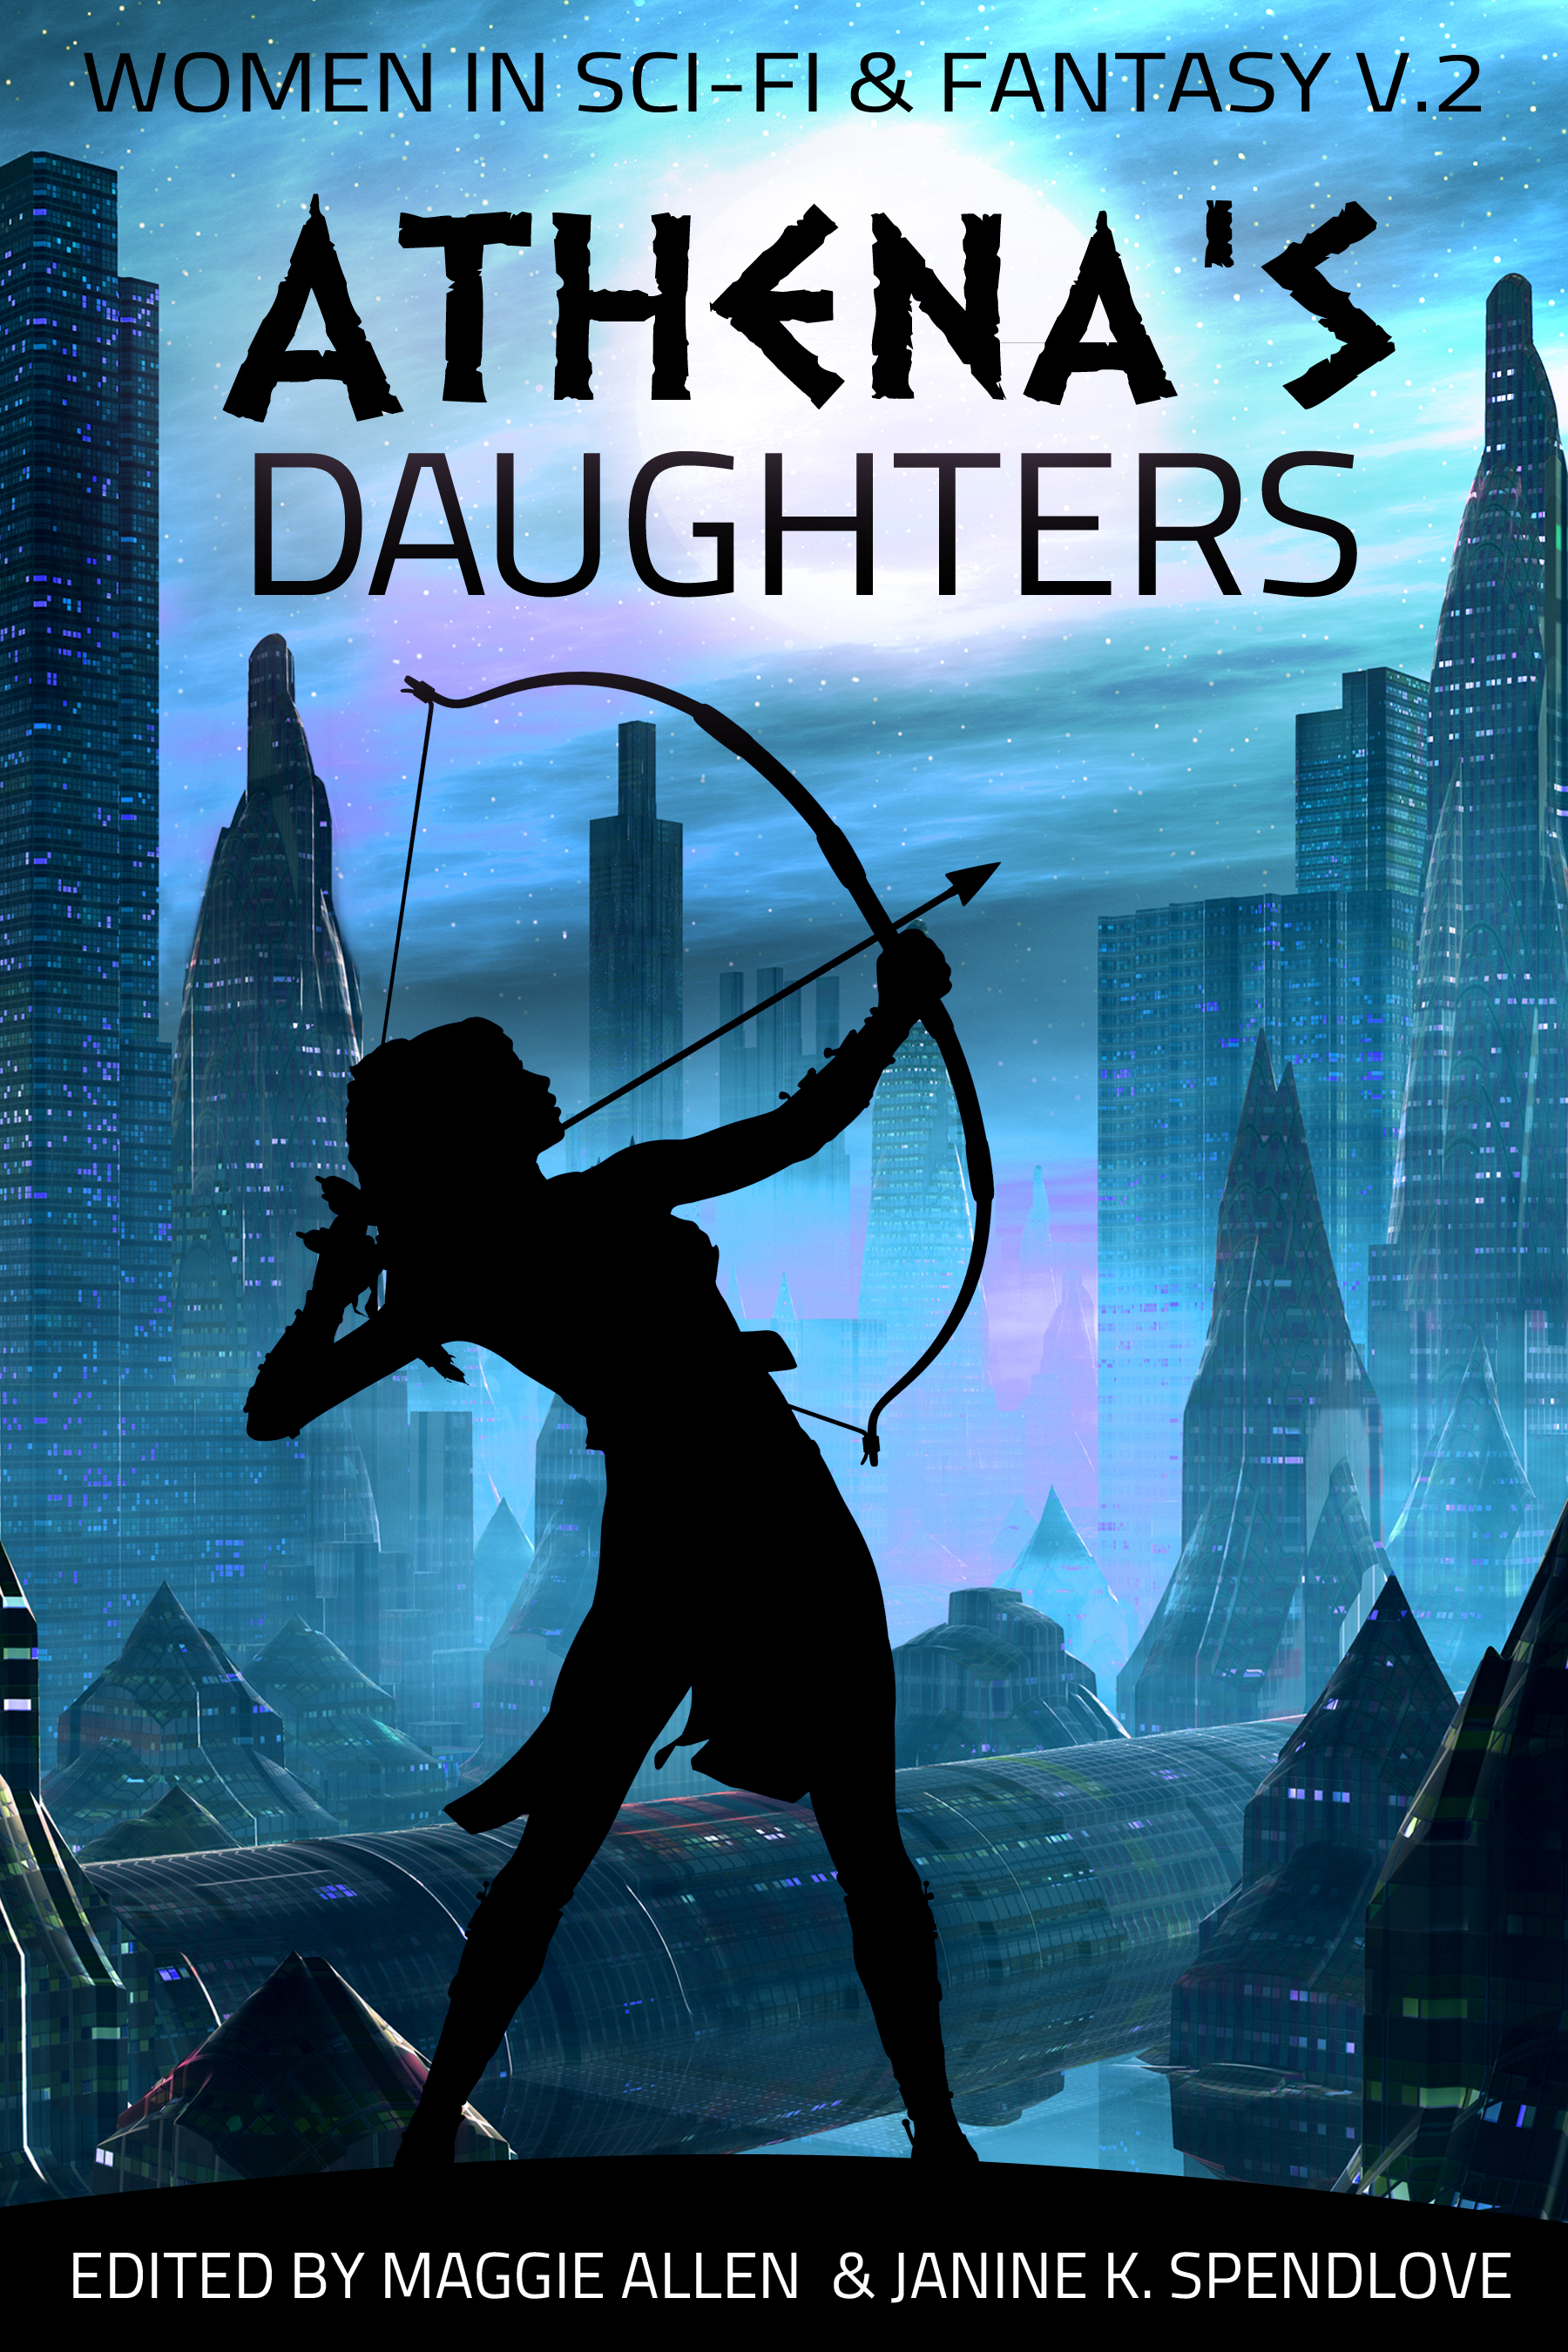 Athena's Daughters Volume 2: Promoting Women in Sci-fi